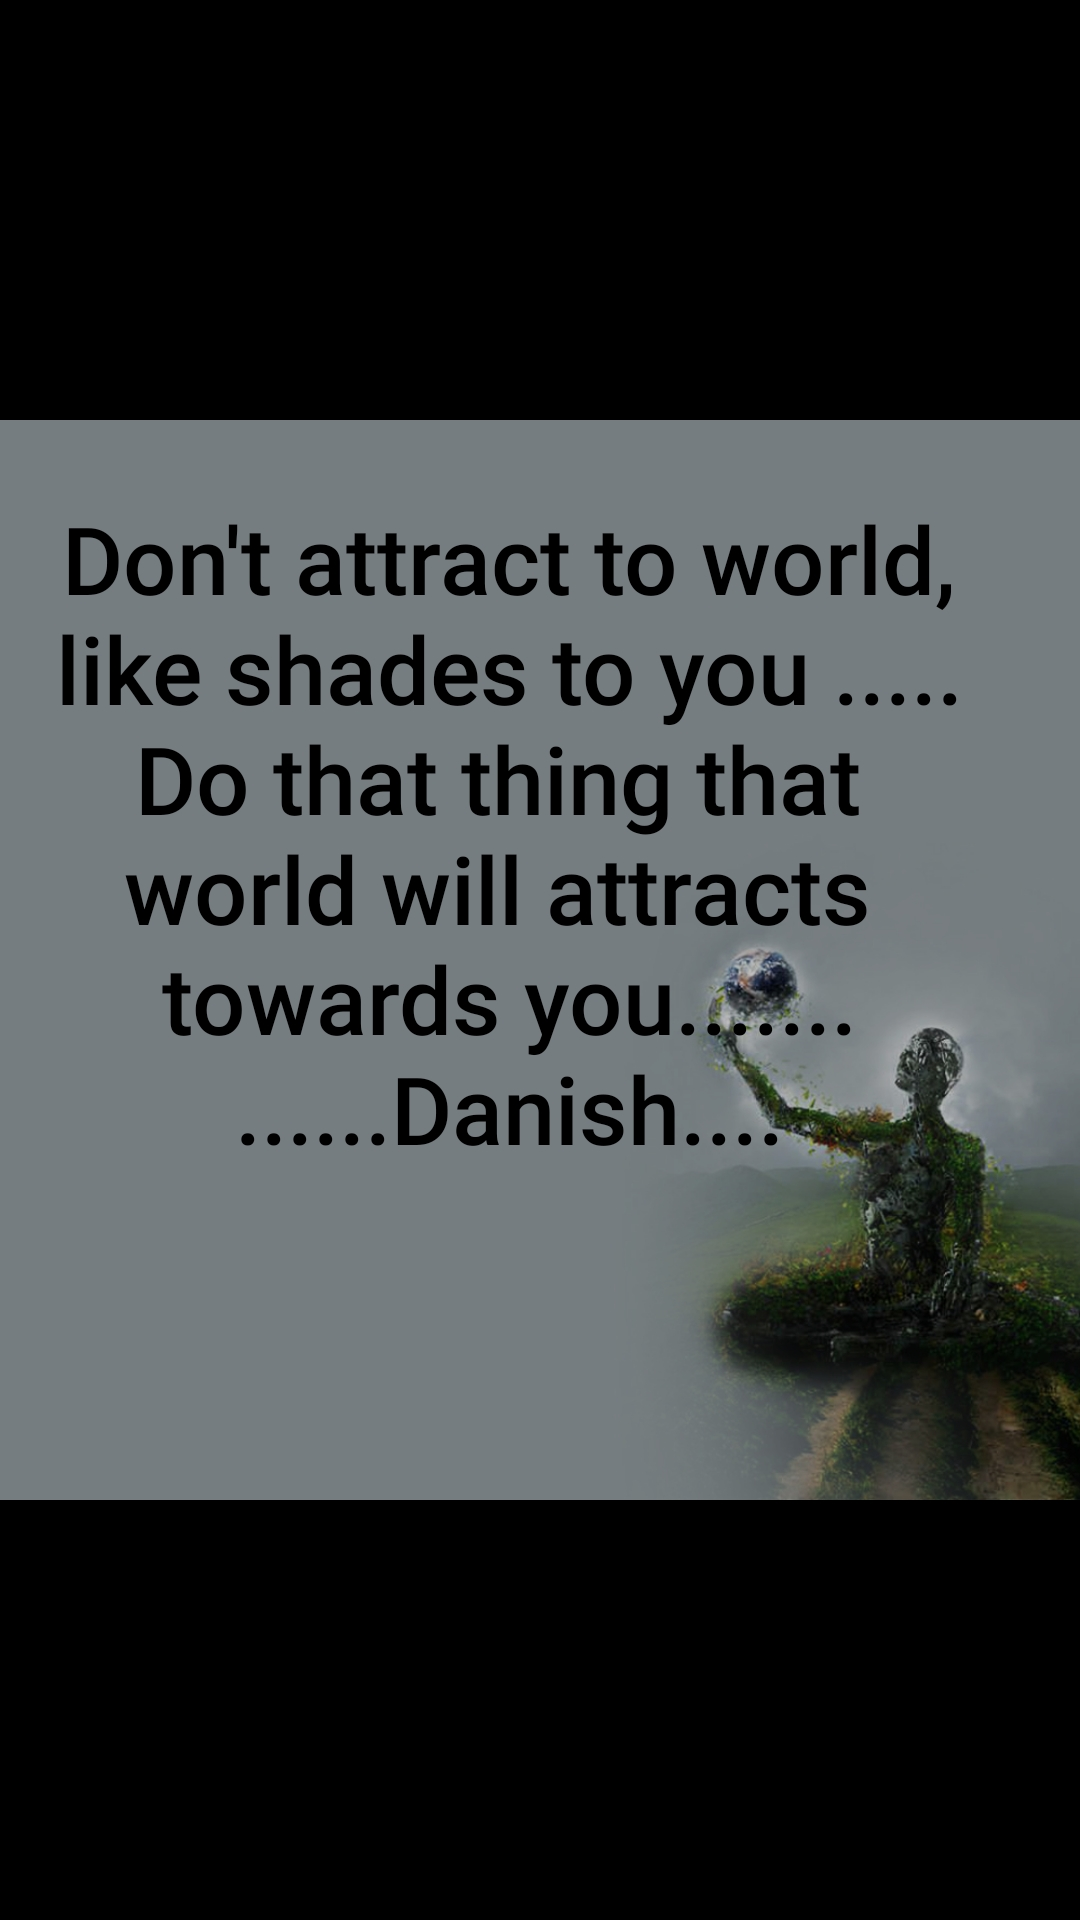 Don't attract to world, like shades to you ..... Do that thing that  world will attracts  towards you....... ......Danish....